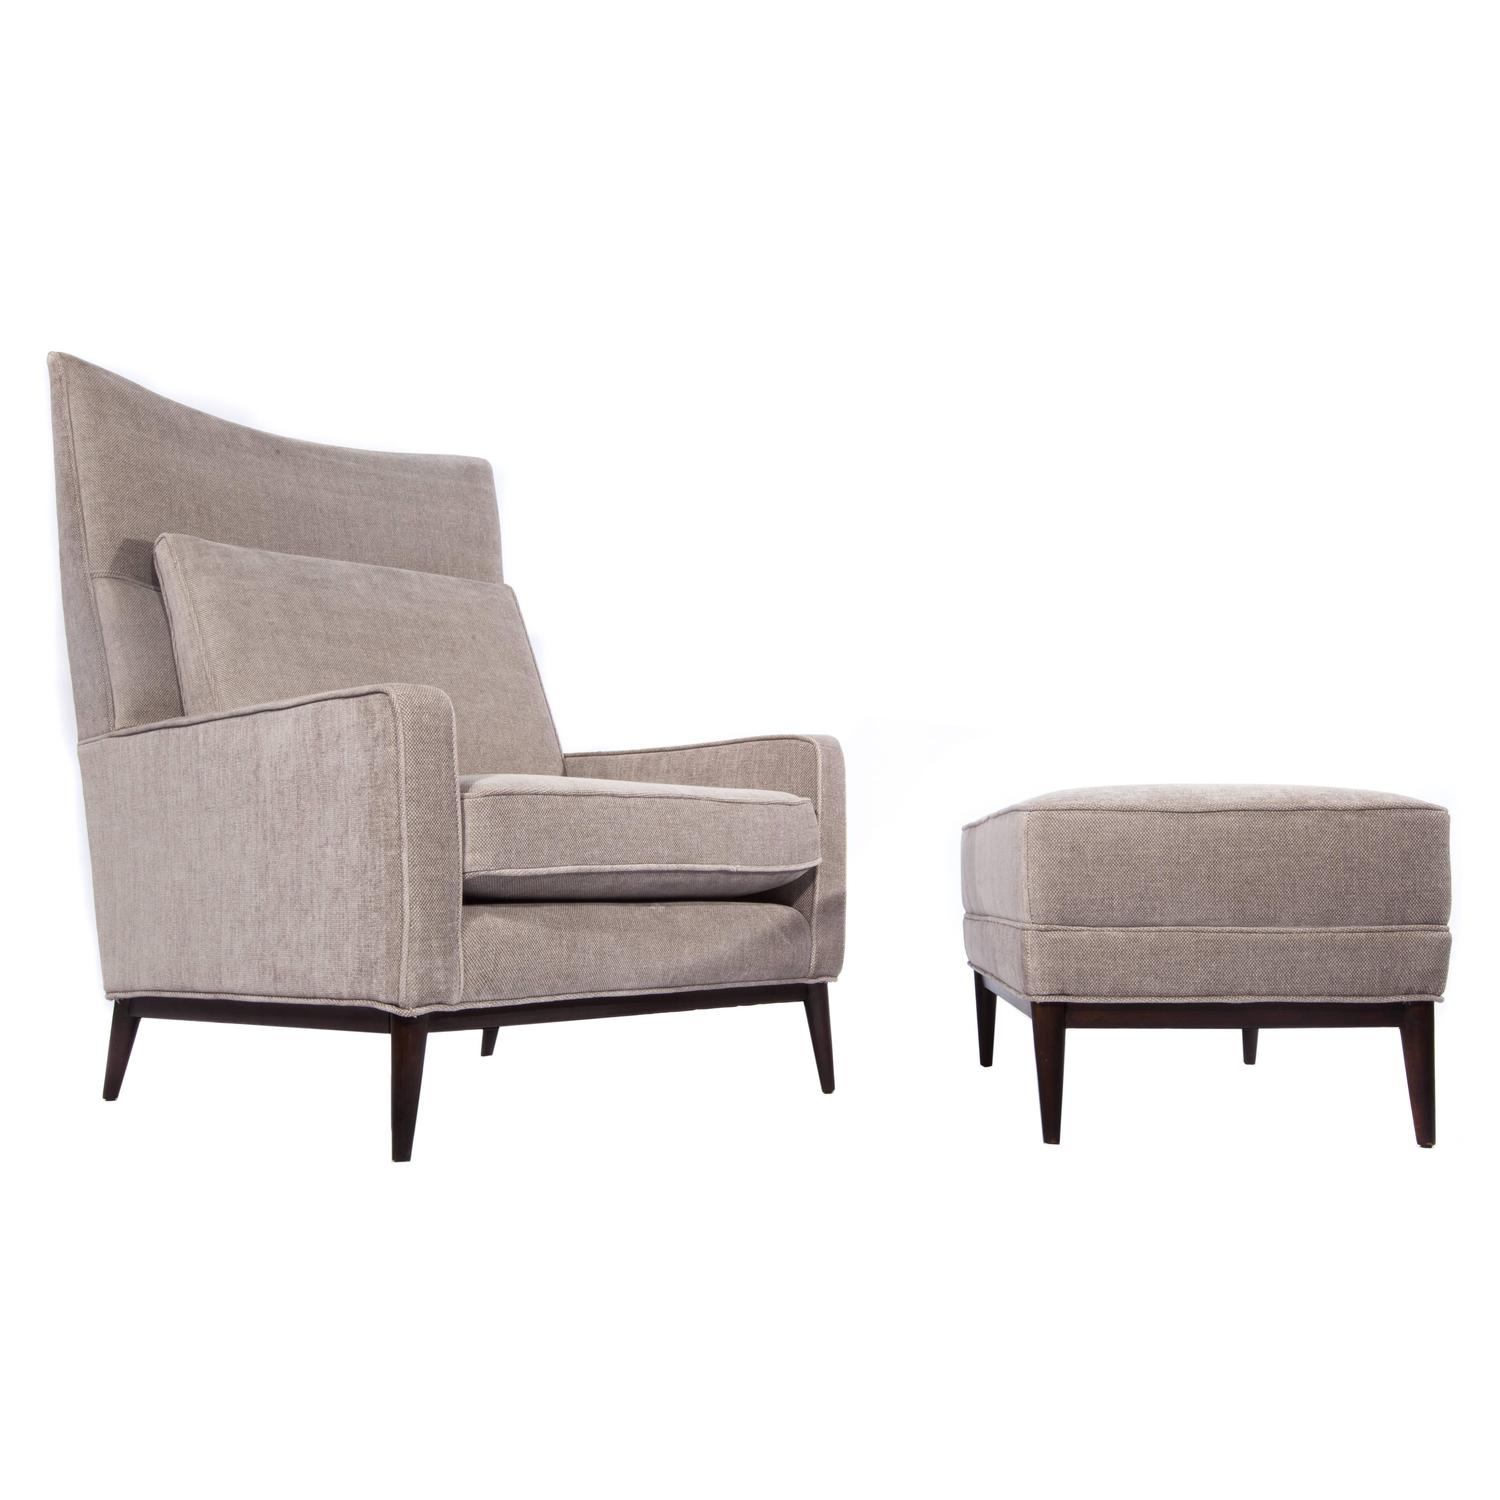 Paul McCobb Wingback Chair and Ottoman at 1stdibs